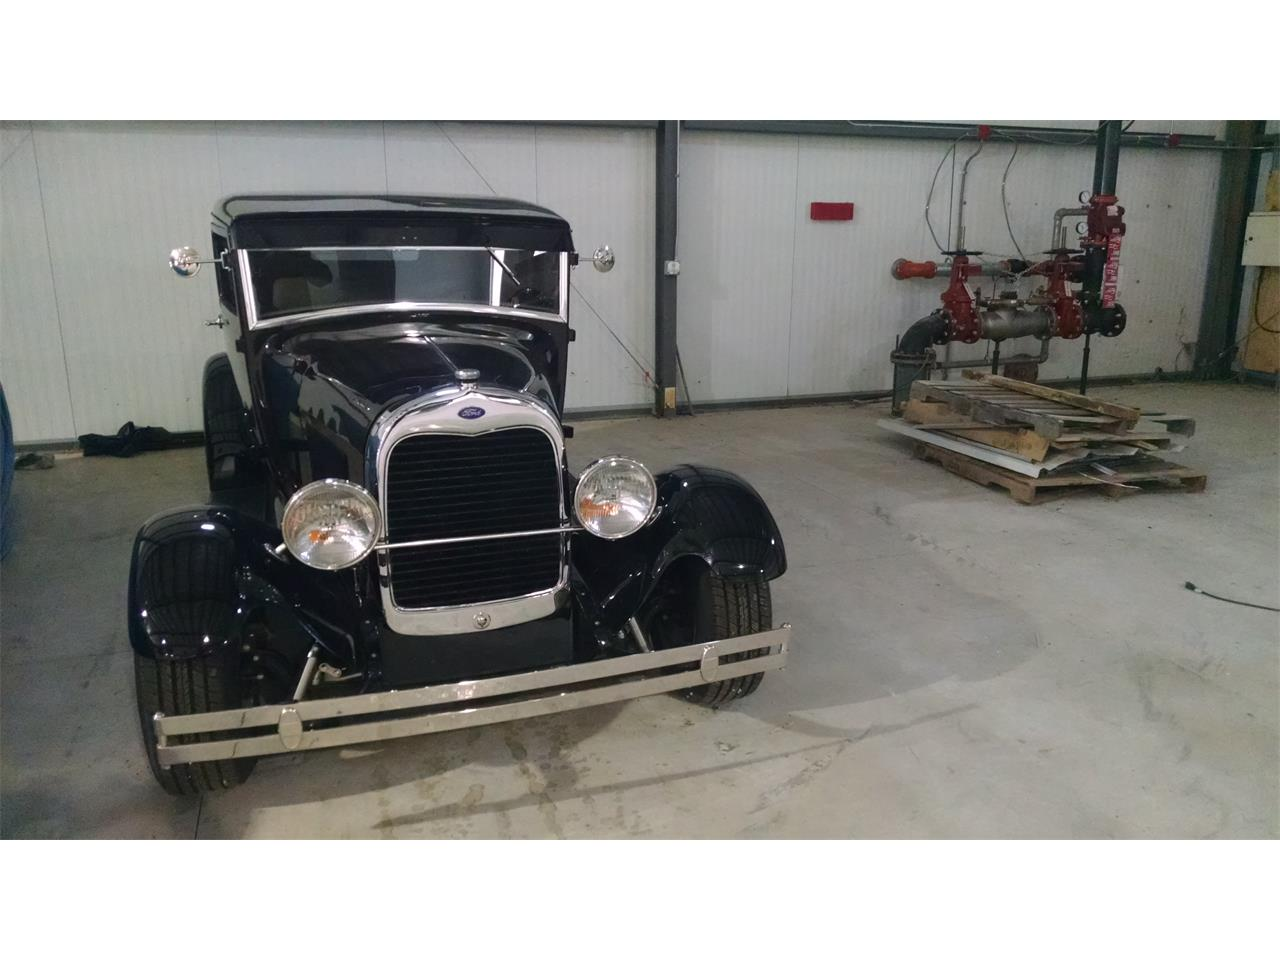 Large Picture of '29 Ford Sedan Delivery located in Richwood Ohio - $79,500.00 Offered by a Private Seller - ENZP